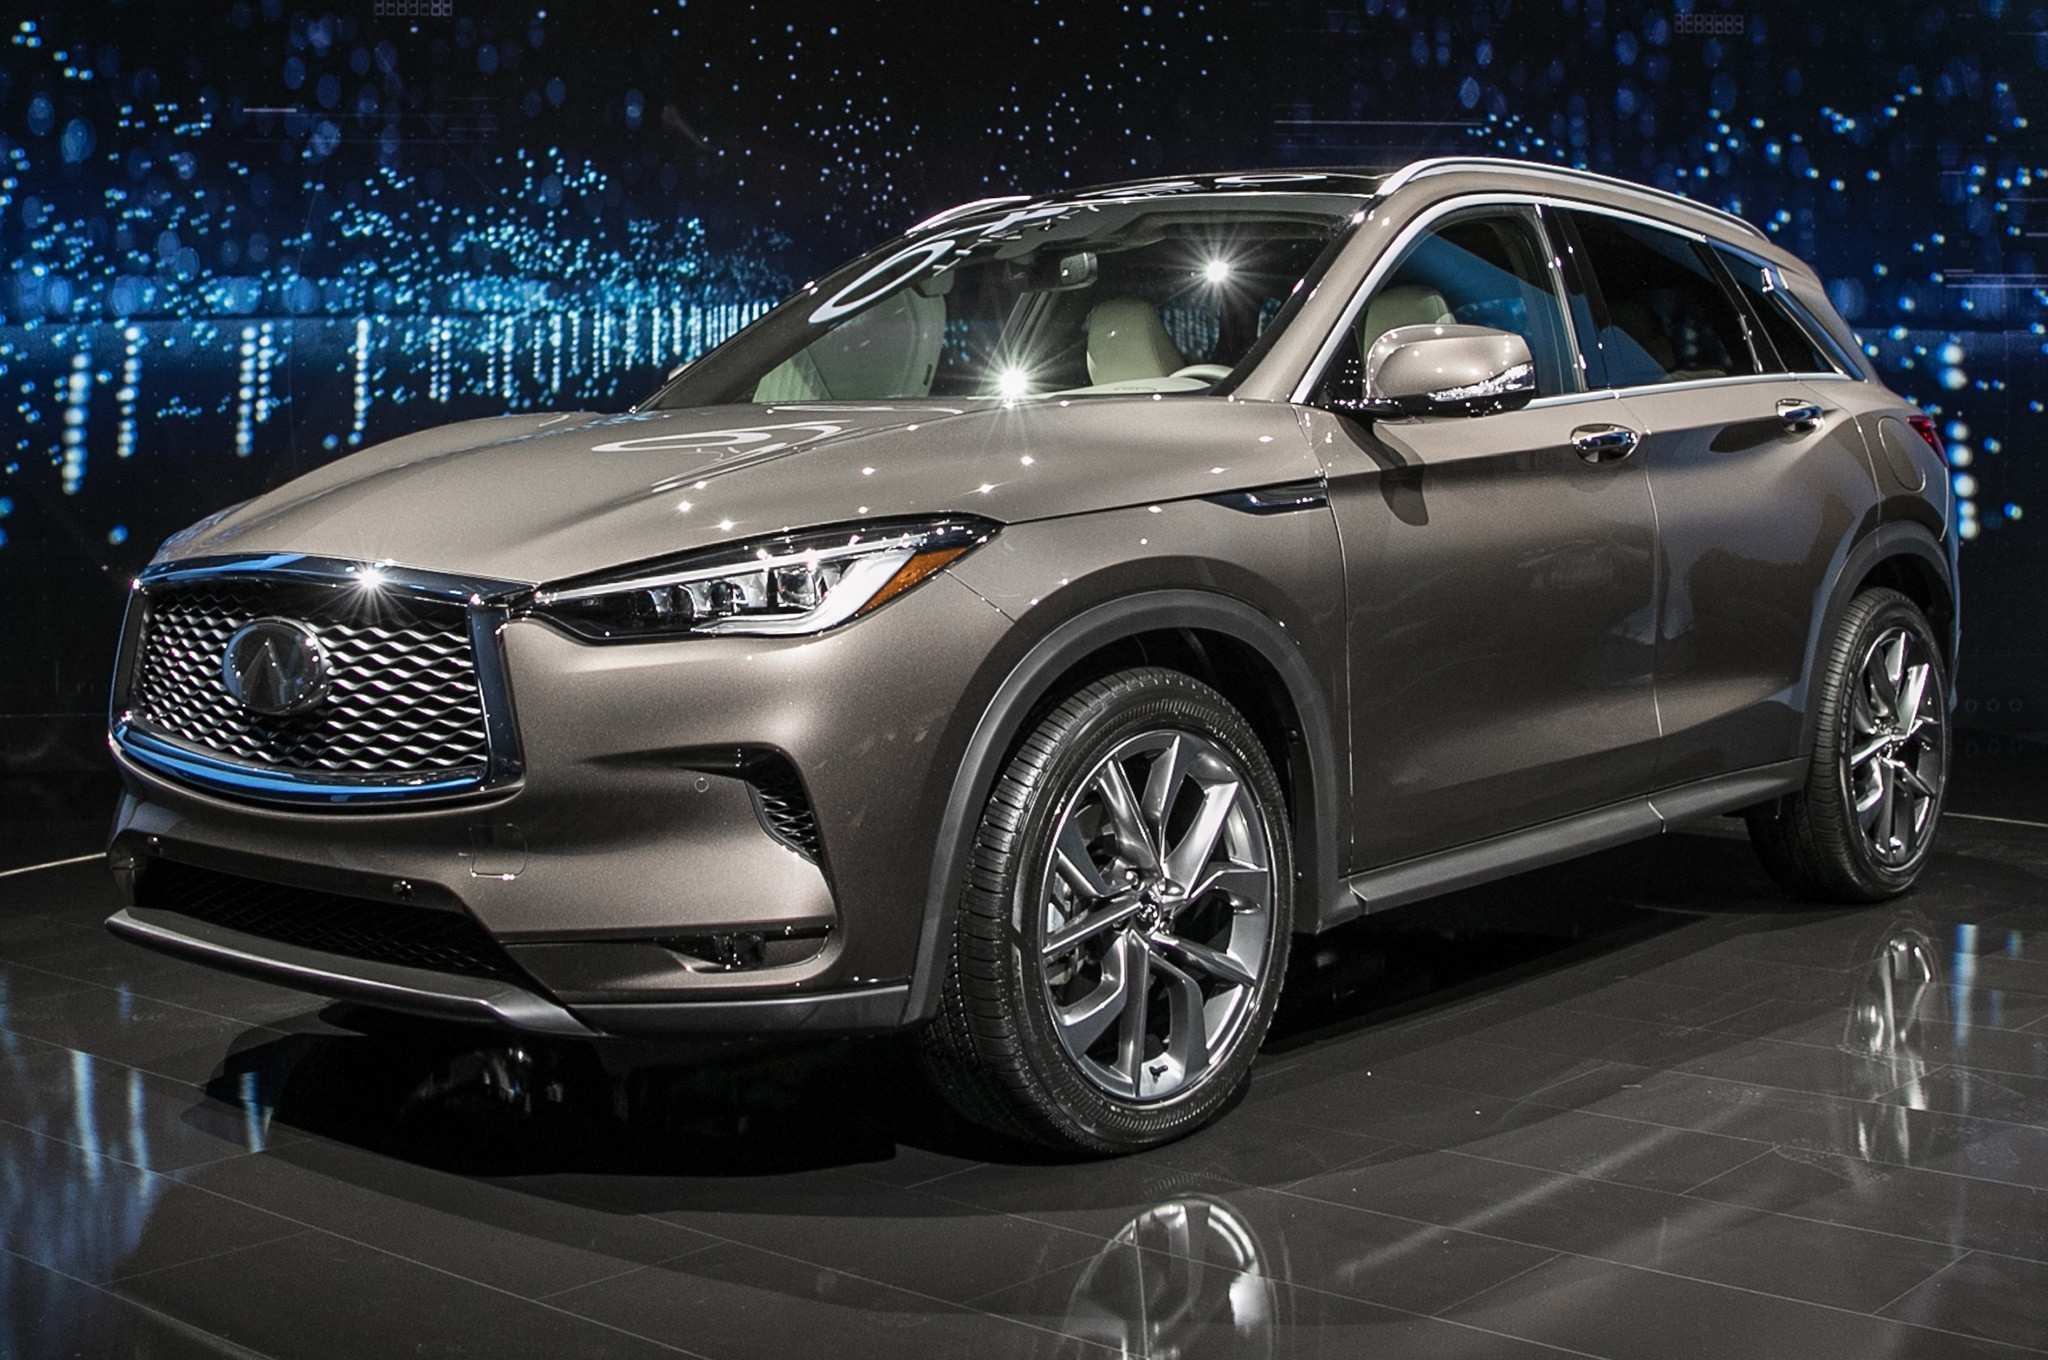 62 Gallery of 2020 Infiniti QX50 Research New by 2020 Infiniti QX50